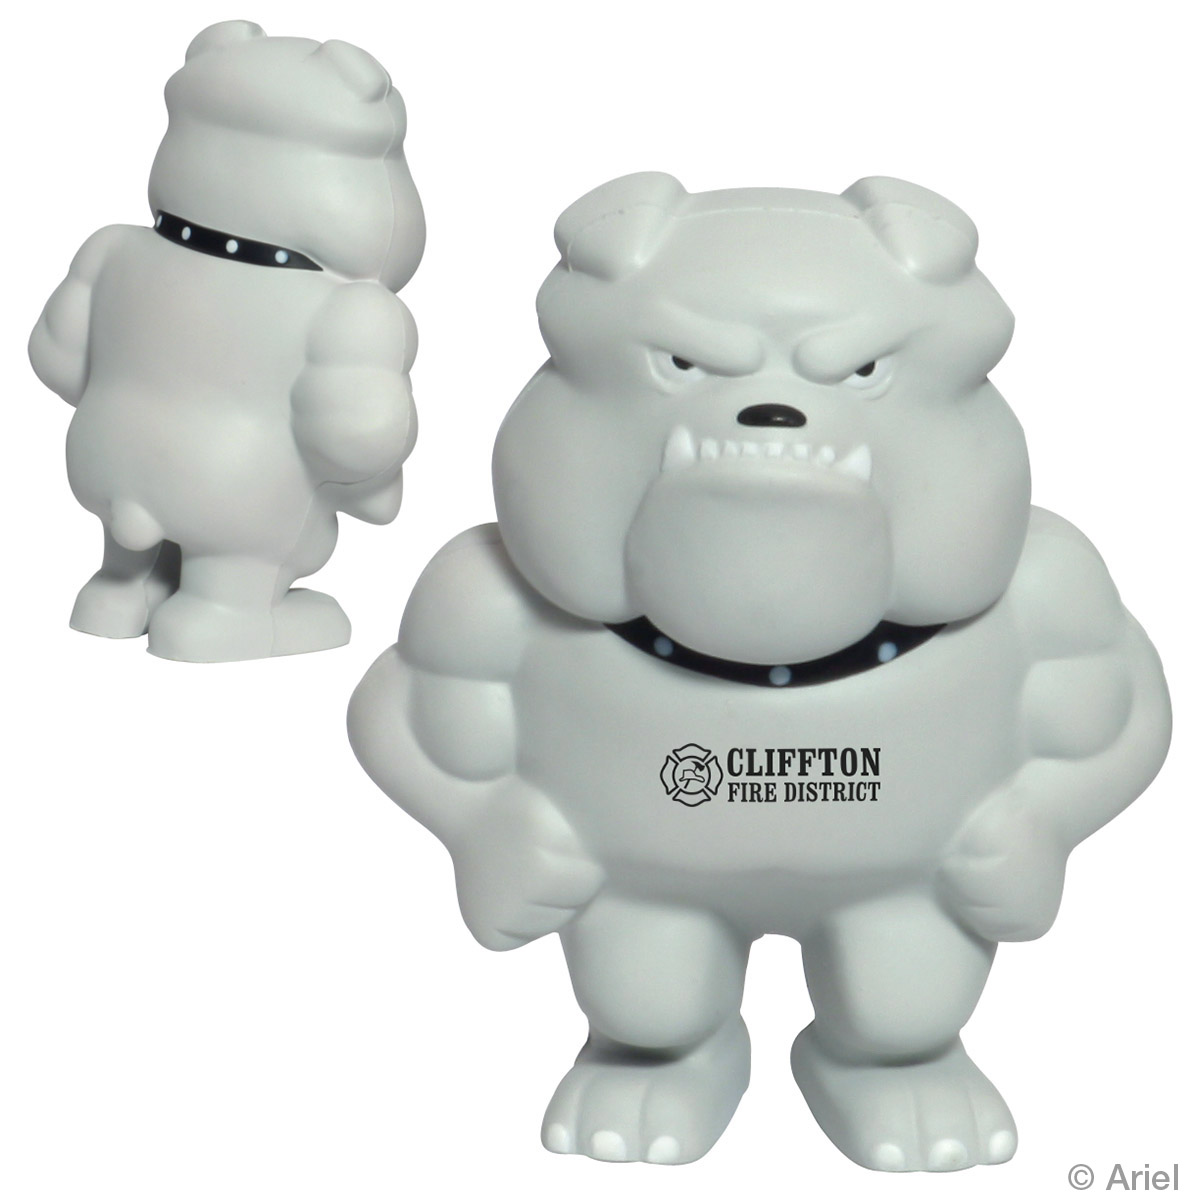 Bulldog Mascot Stress Reliever, LMT-BD06 - 1 Colour Imprint